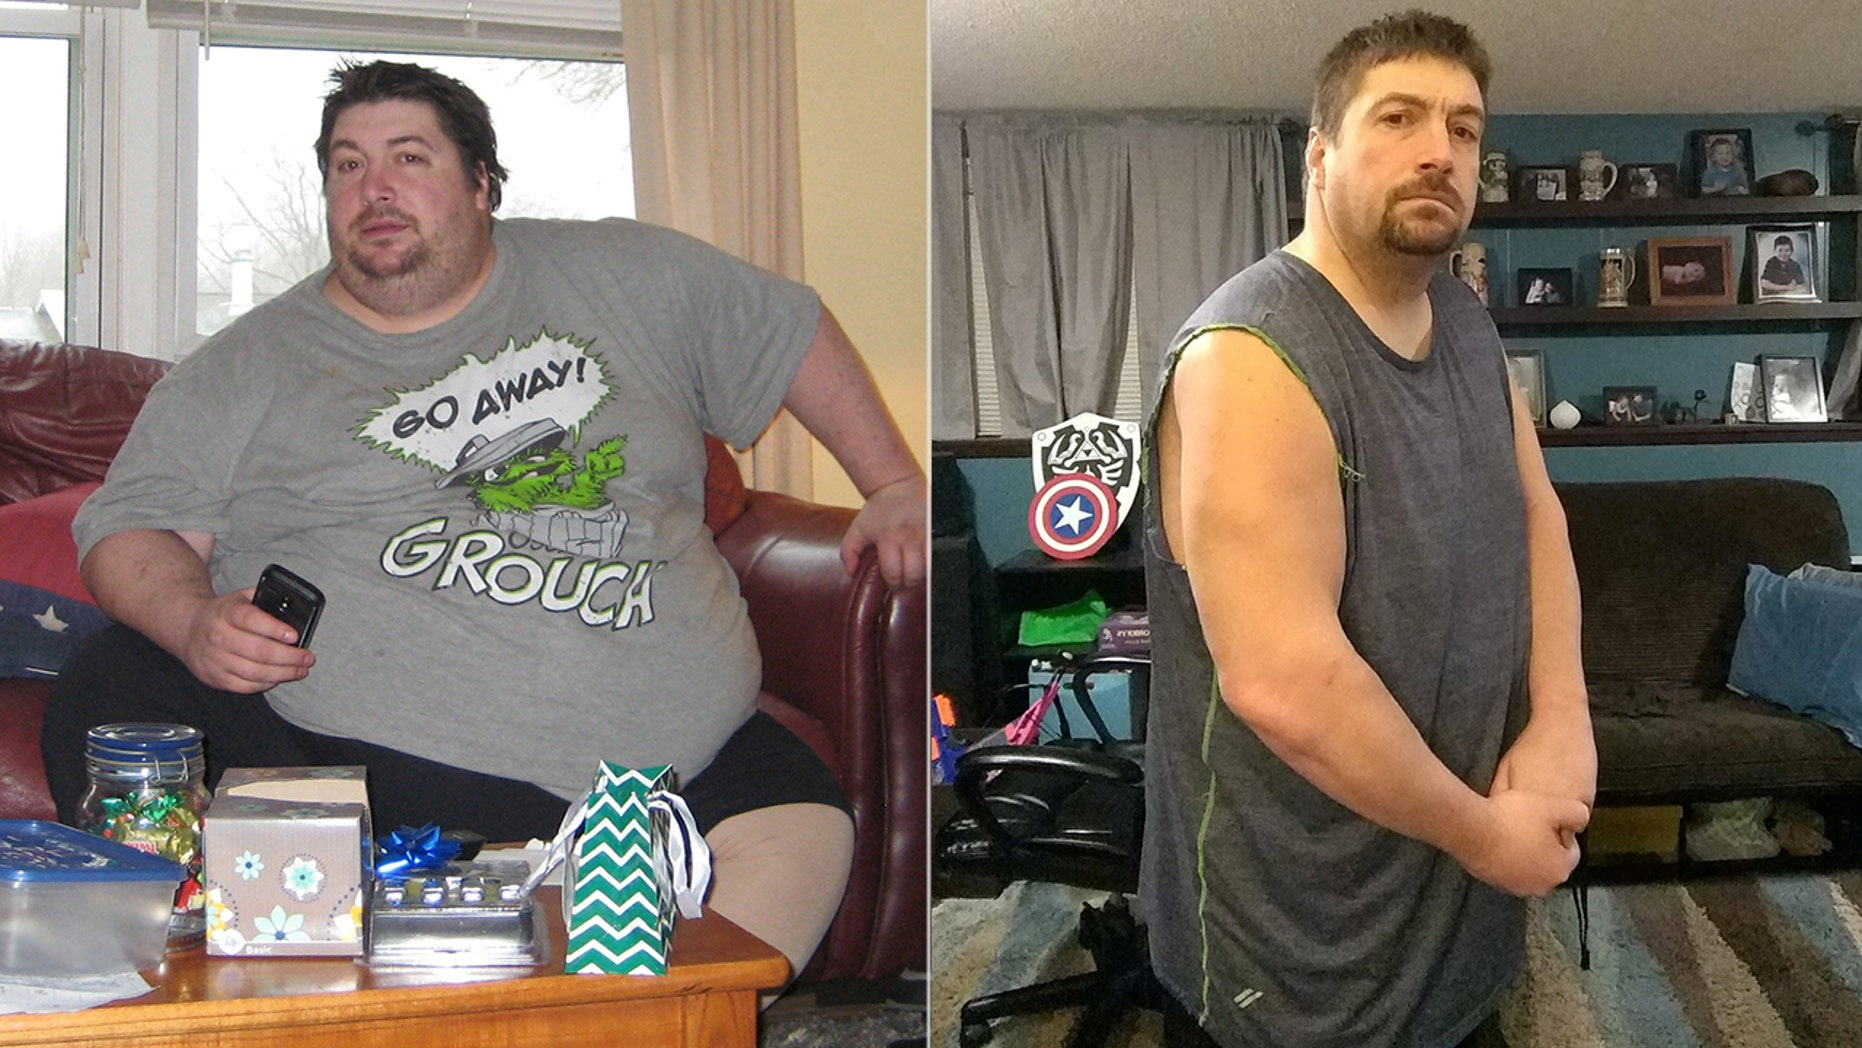 Logan Goodall ditched his unhealthy diet and shed 300 pounds after doctors diagnosed him with a host of health problems.